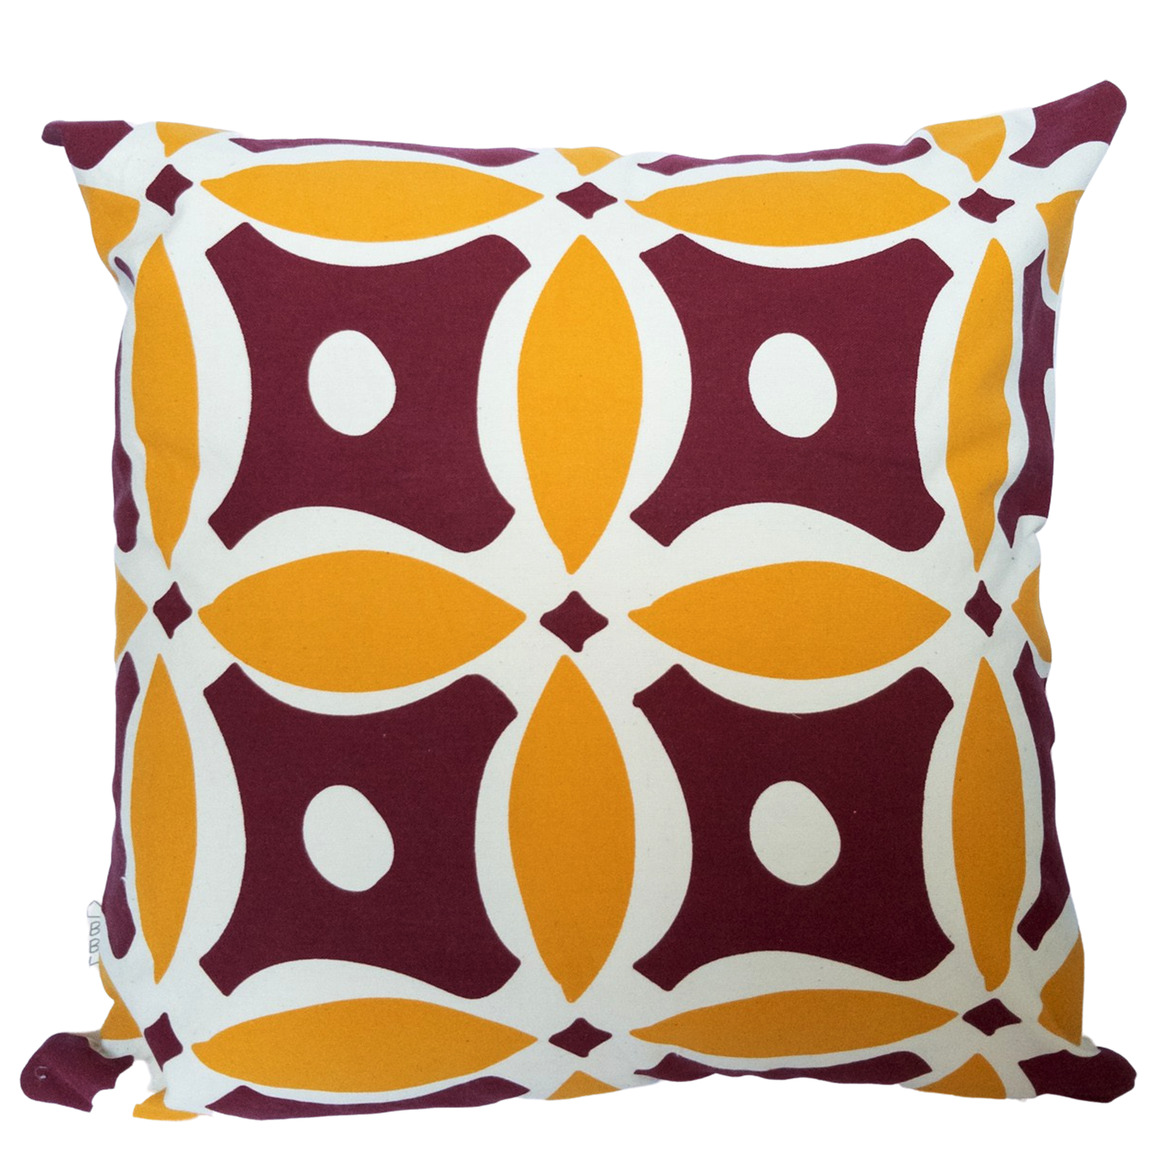 Vintage Inspired Geometric  Hand Screen Printed 100% cotton cushion cover-3 Colourways-Cover and Insert | Trada Marketplace